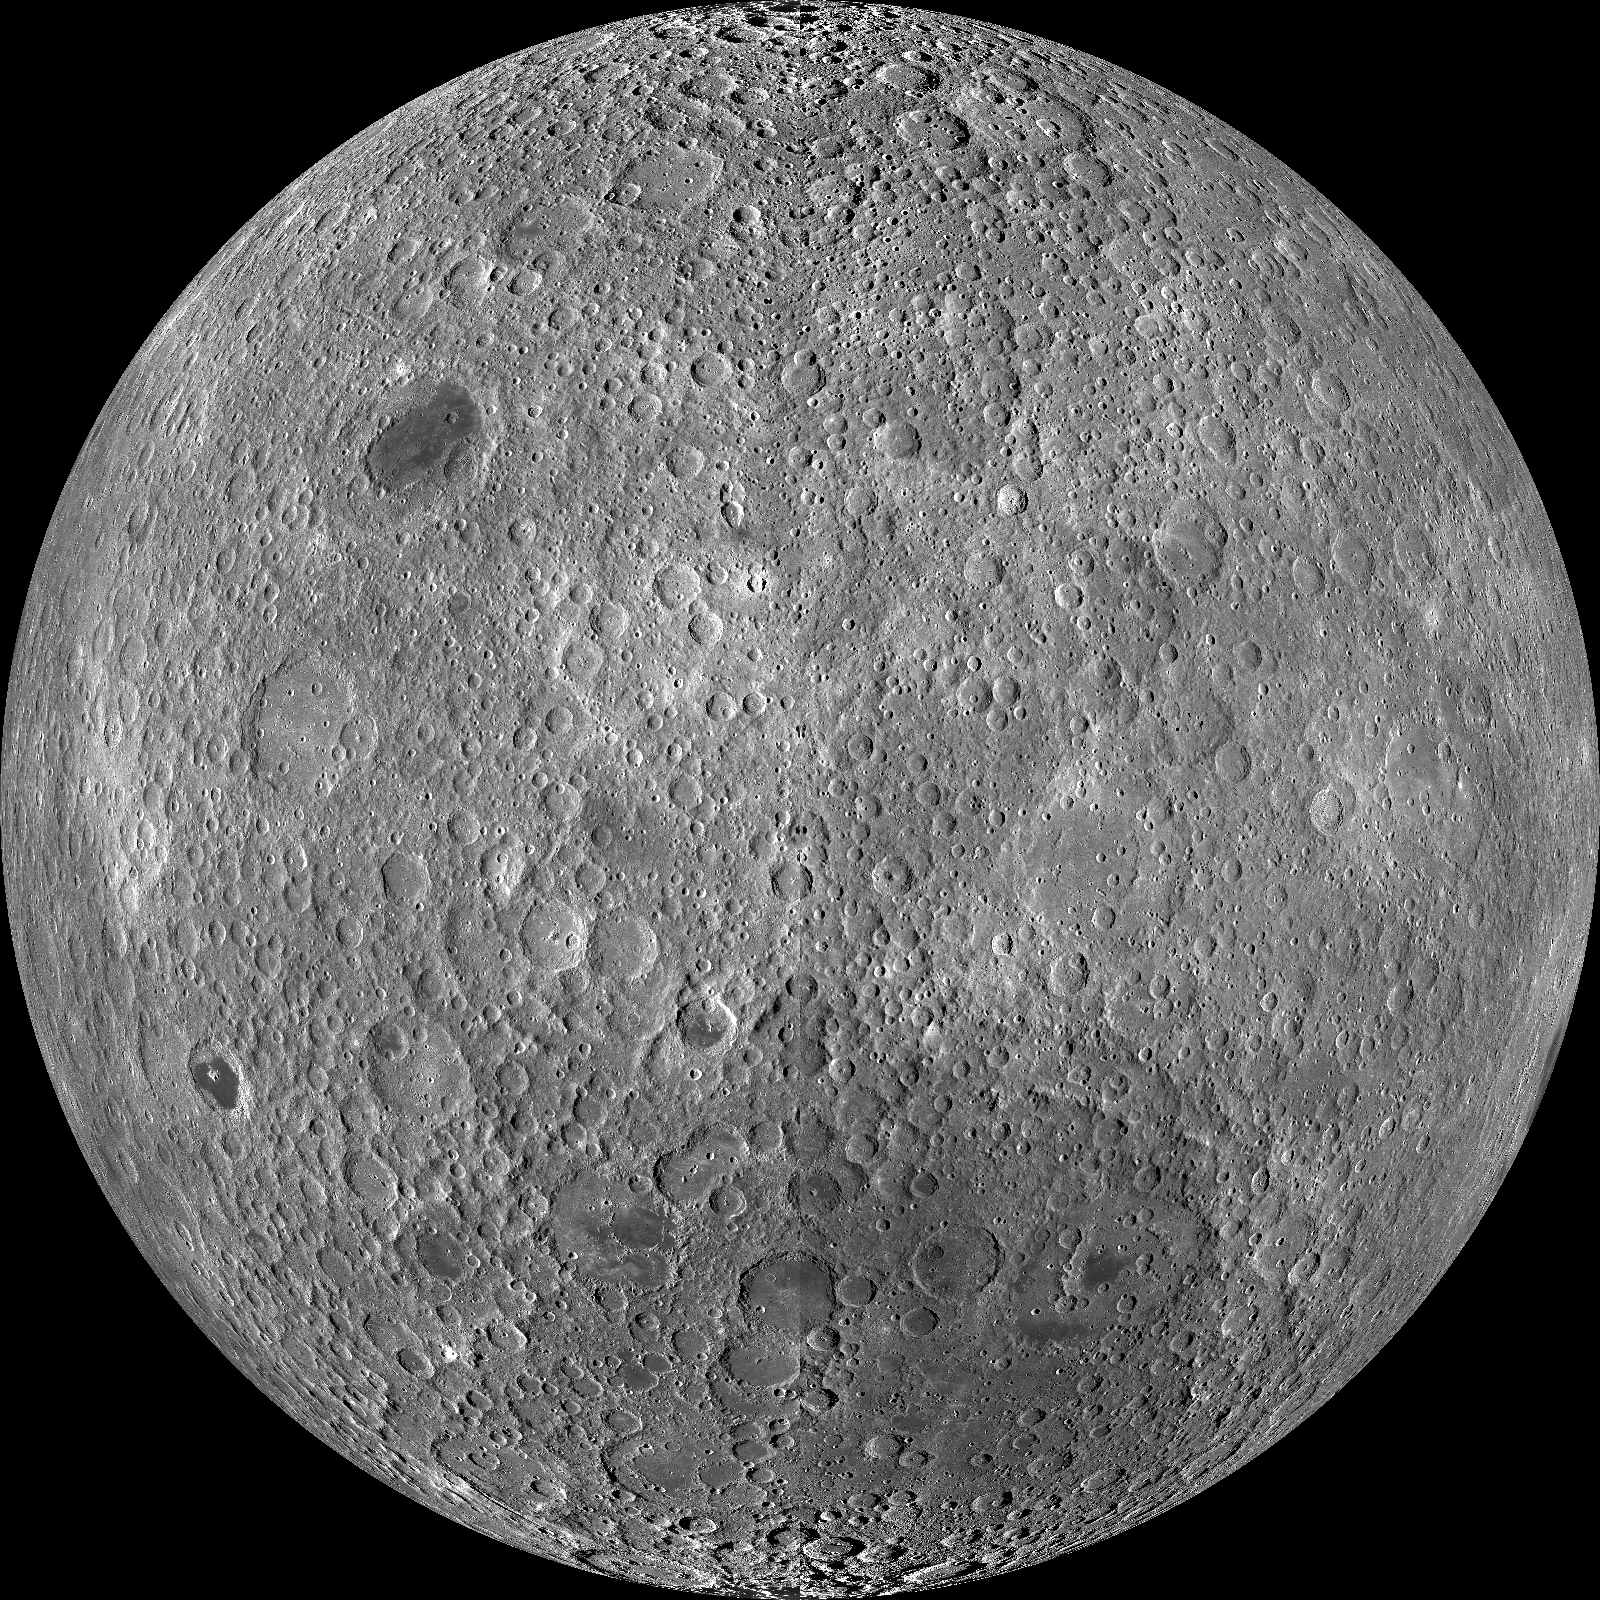 Picture of the Moon's far side